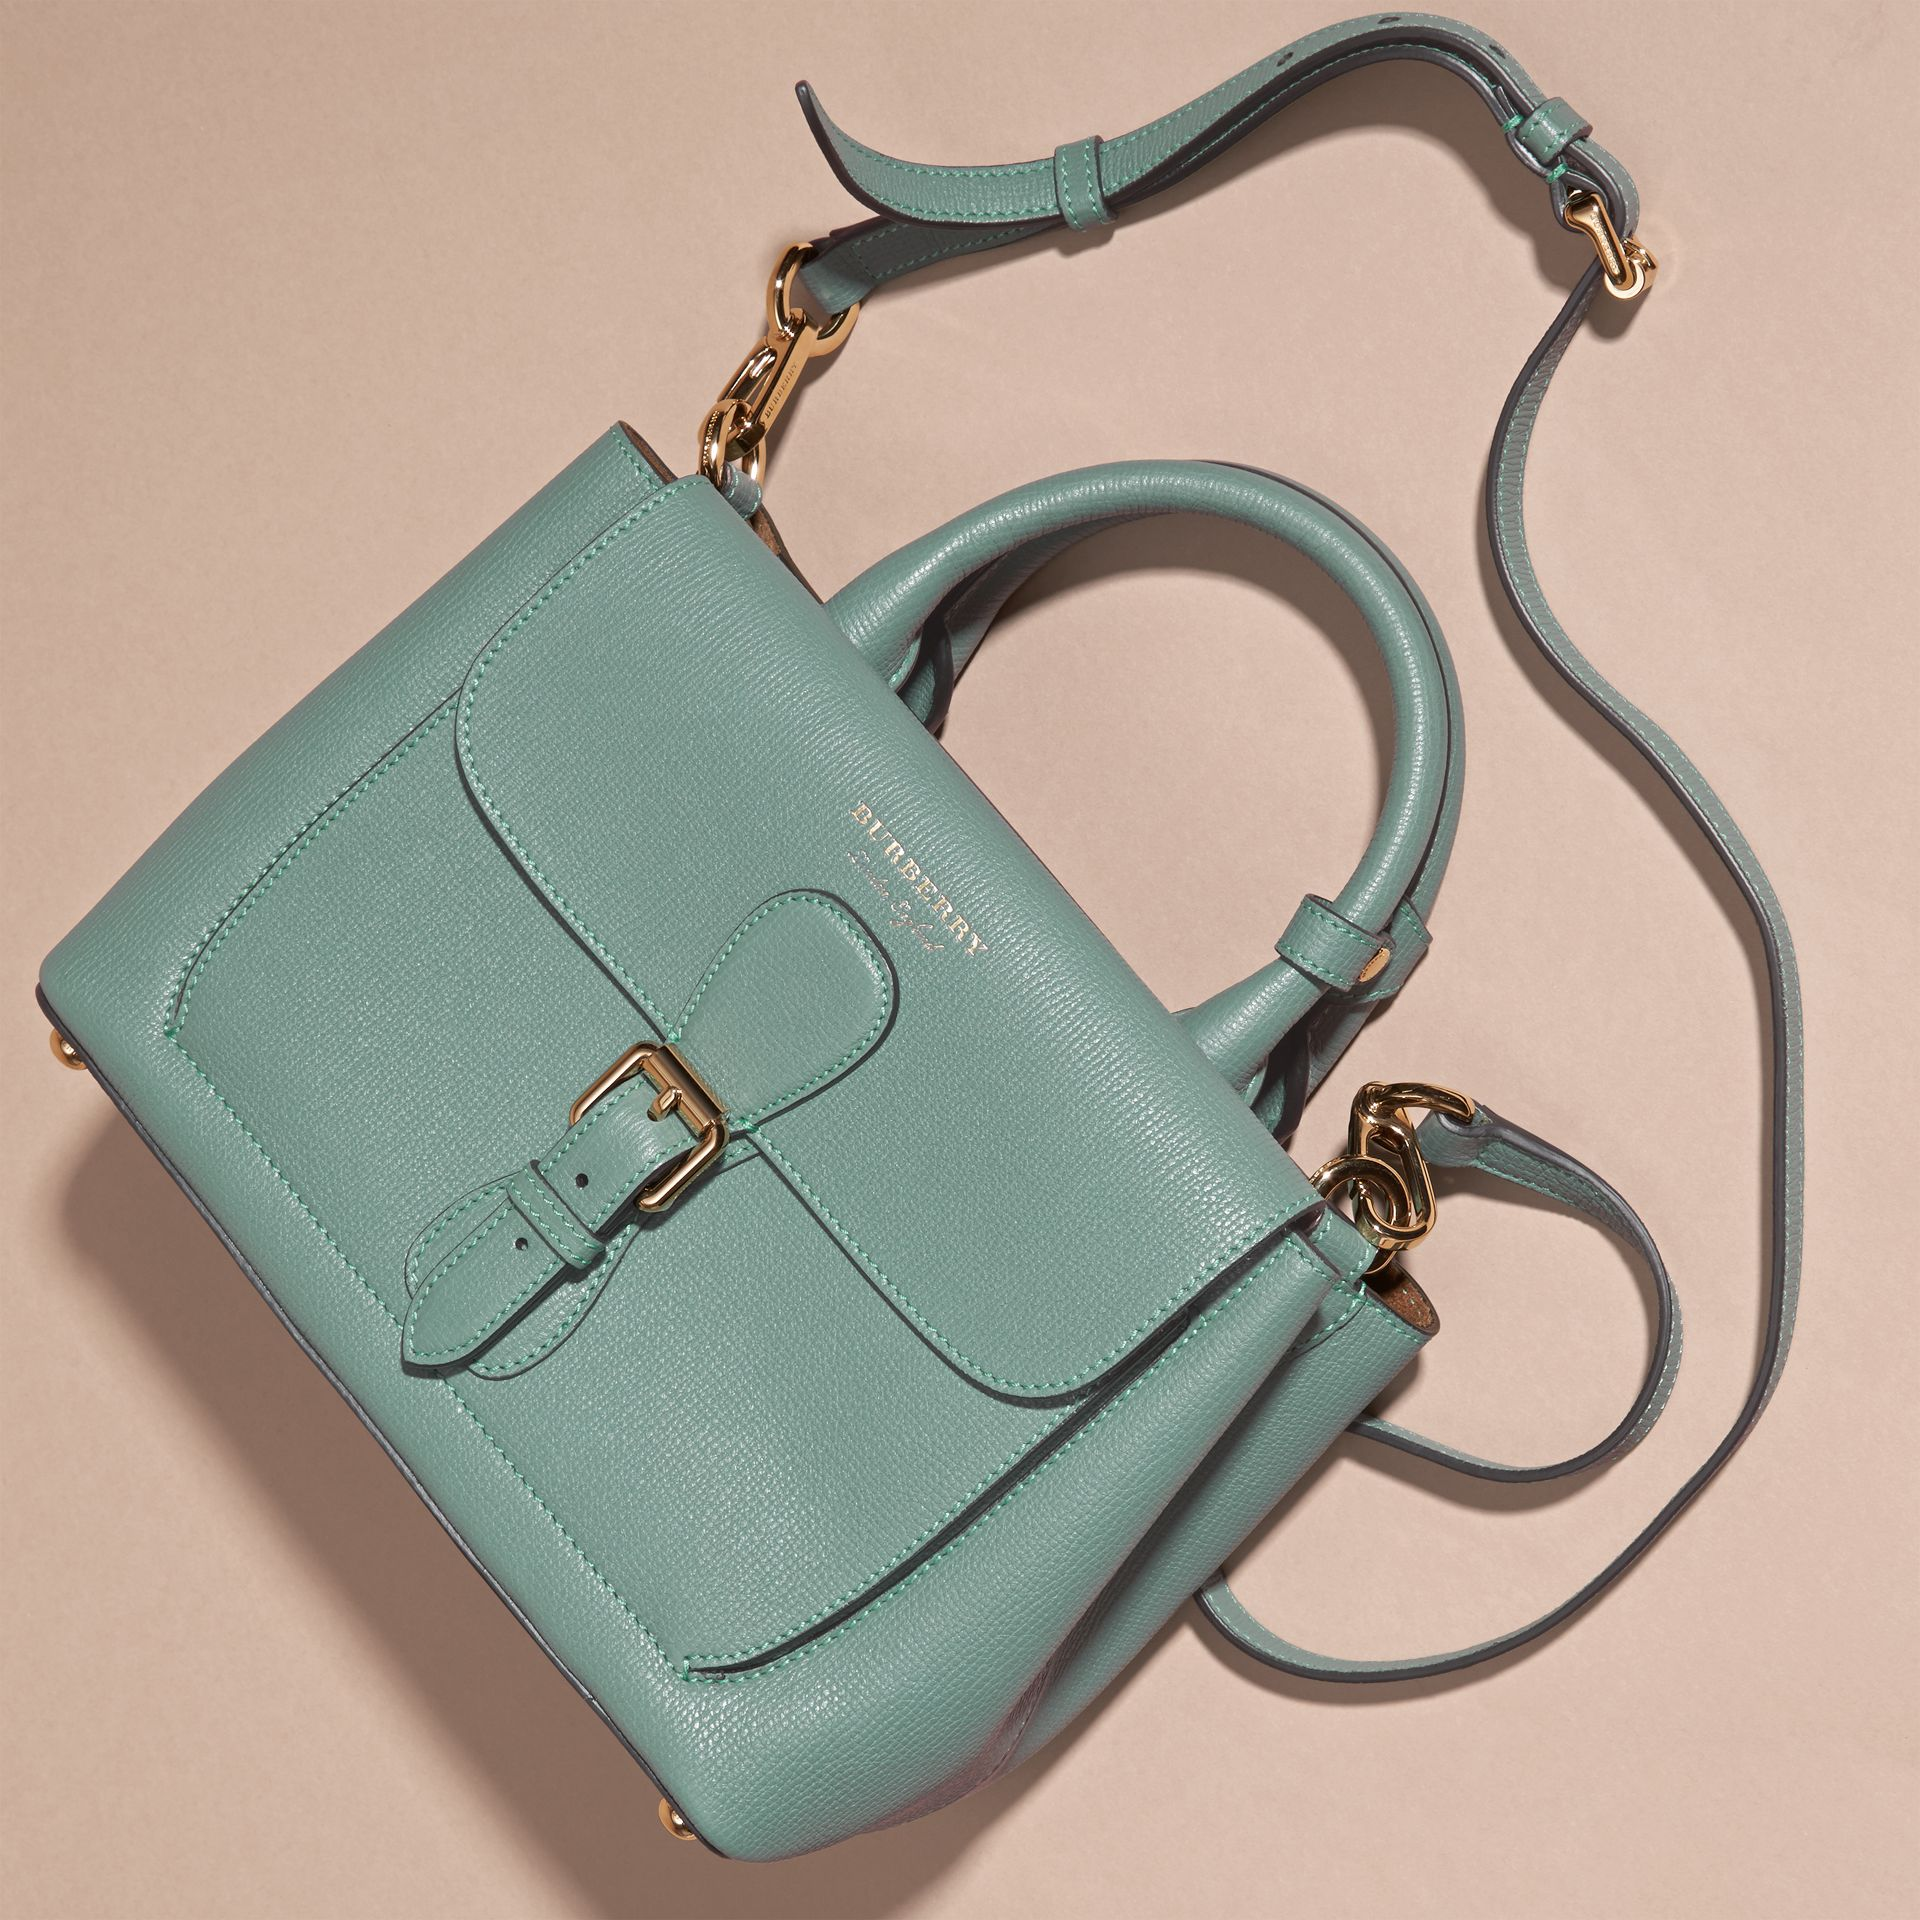 Smokey green The Small Saddle Bag in Grainy Bonded Leather Smokey Green - gallery image 7